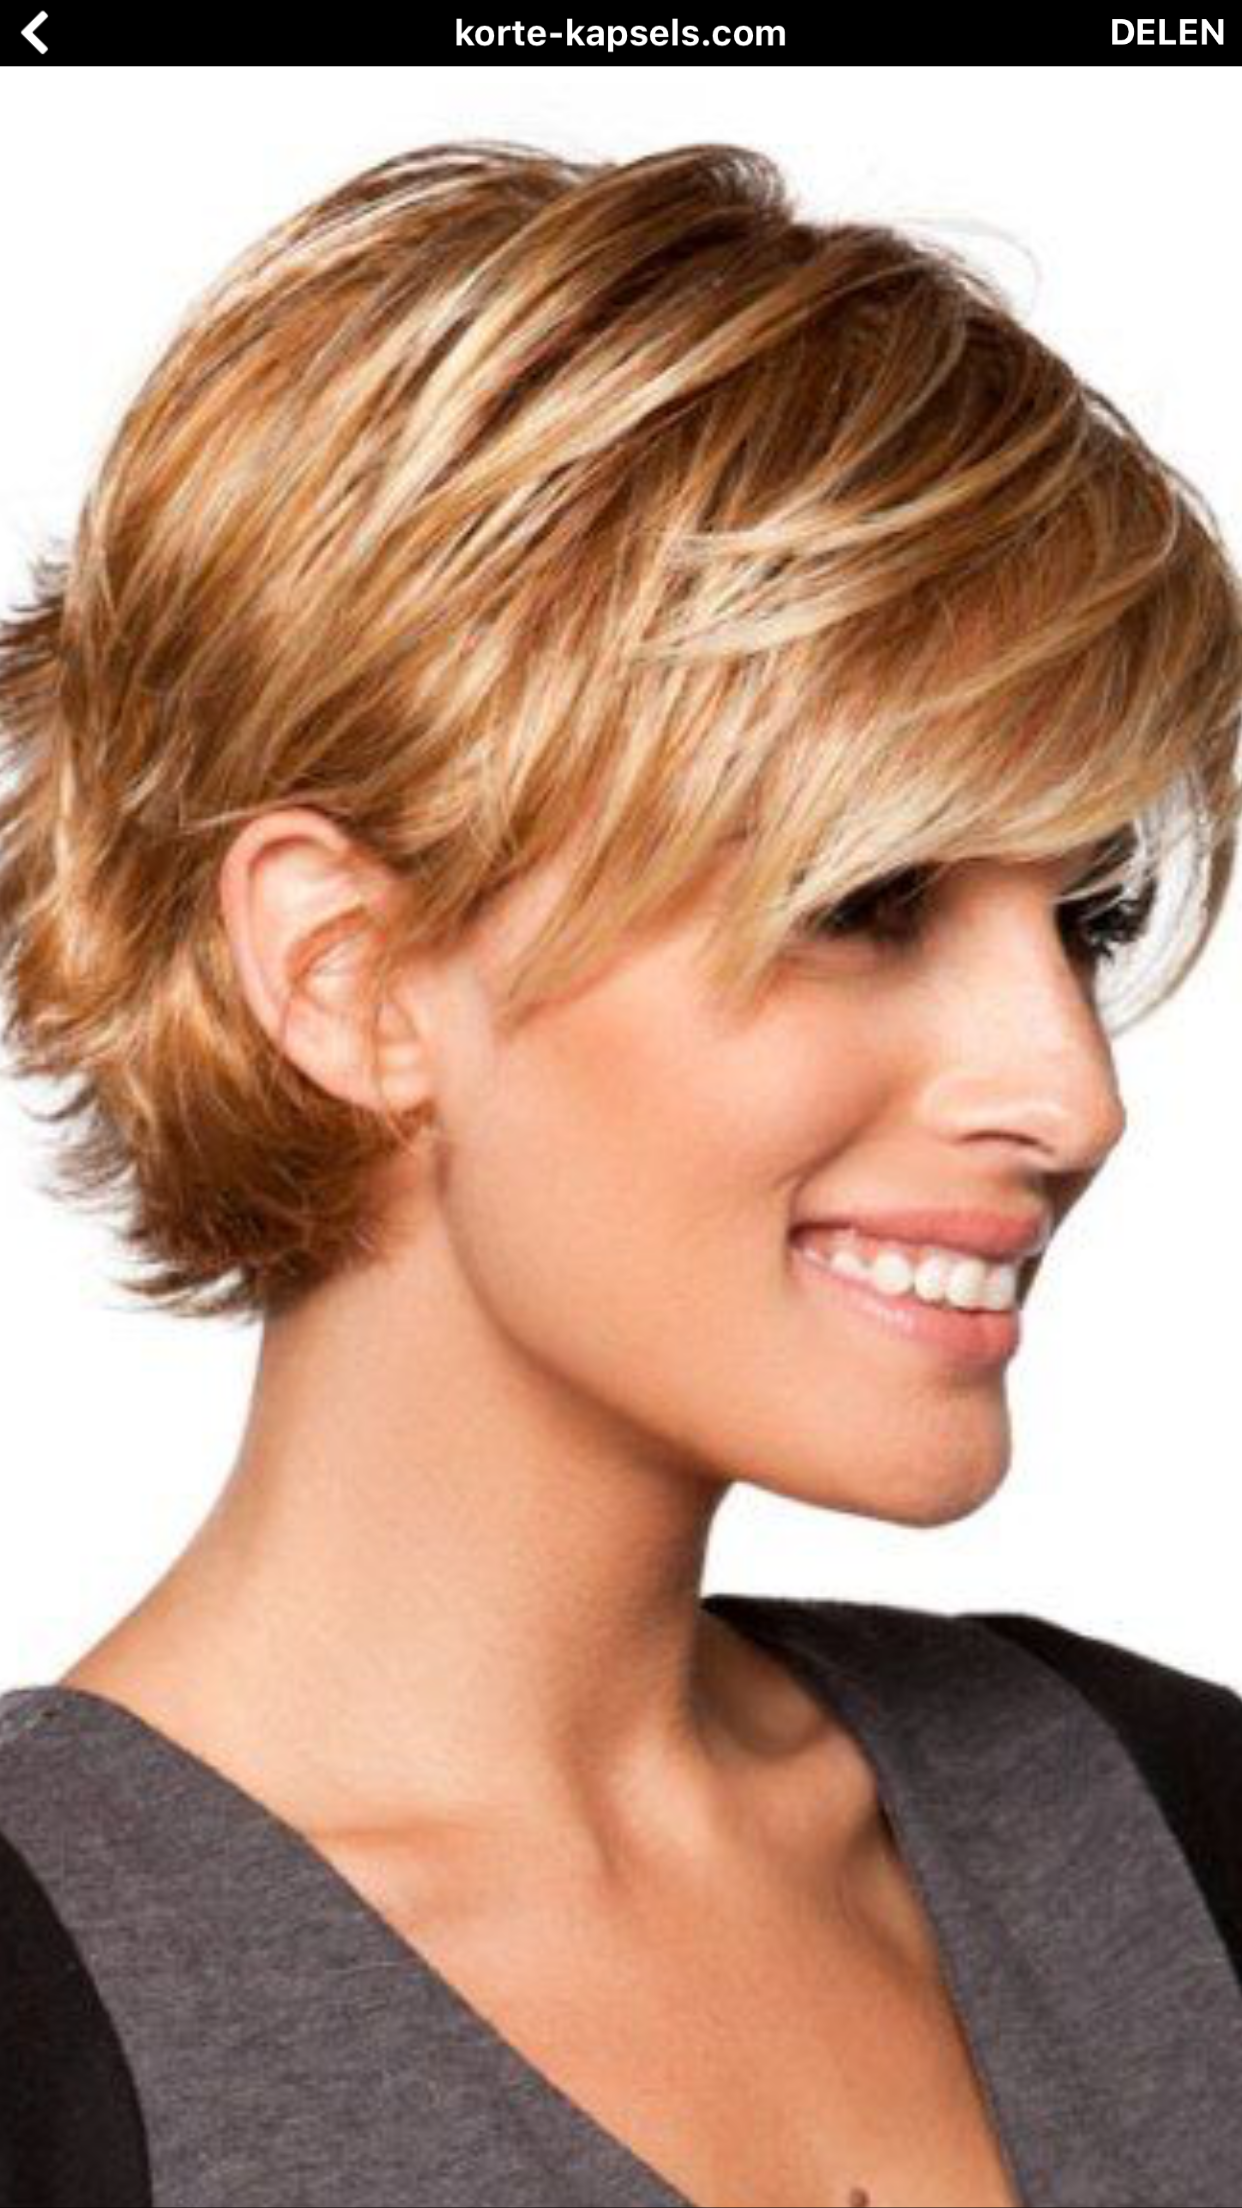 Pin by lovey dovey on just hair pinterest short hairstyle and